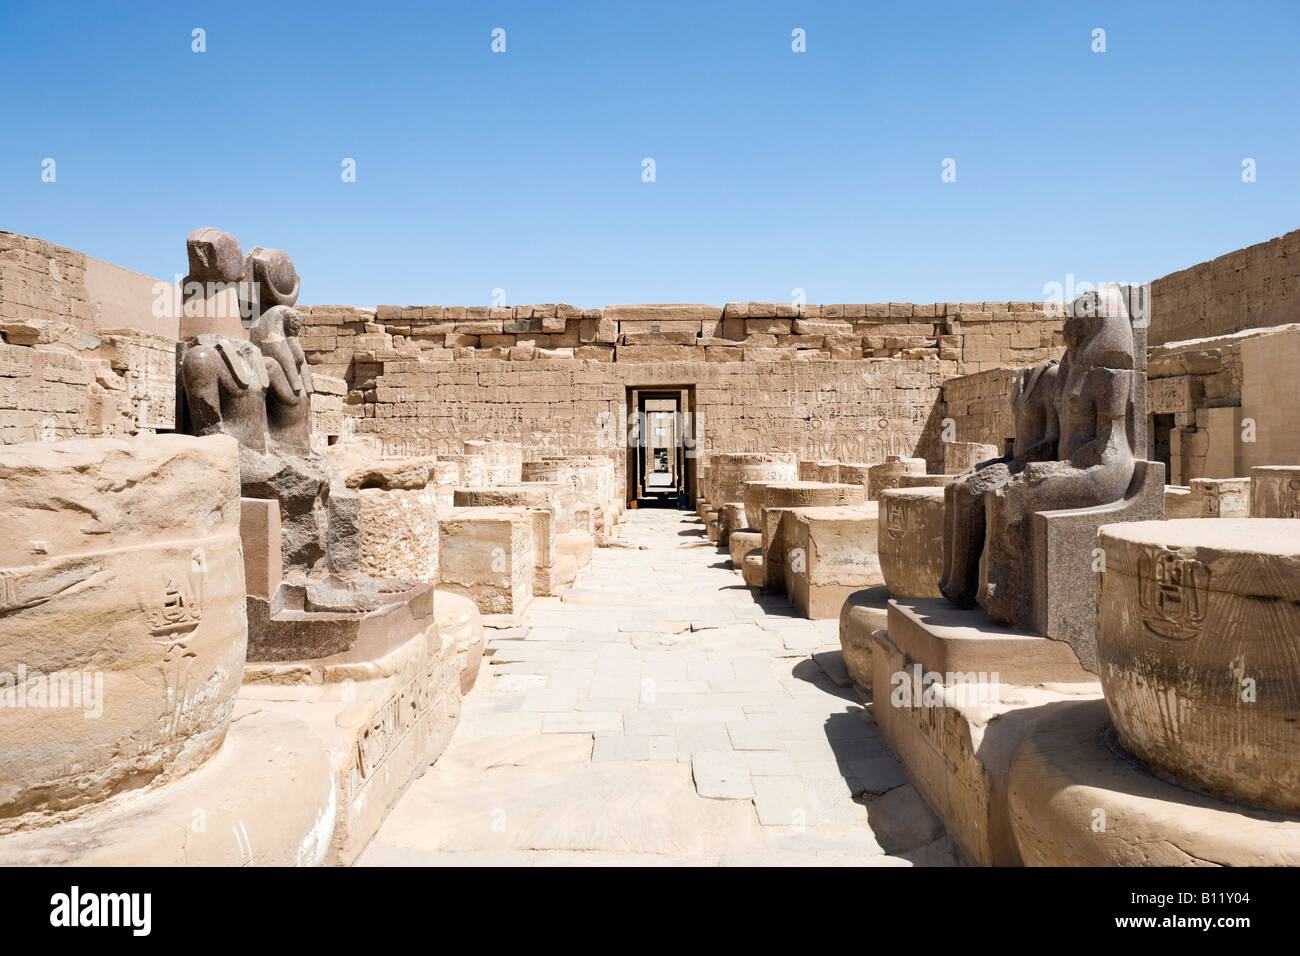 Statues of Ramses & Maat or (Thoth) in Sanctuaries, Temple of Medinet Habu, (Mortuary Temple of Ramses III), - Stock Image